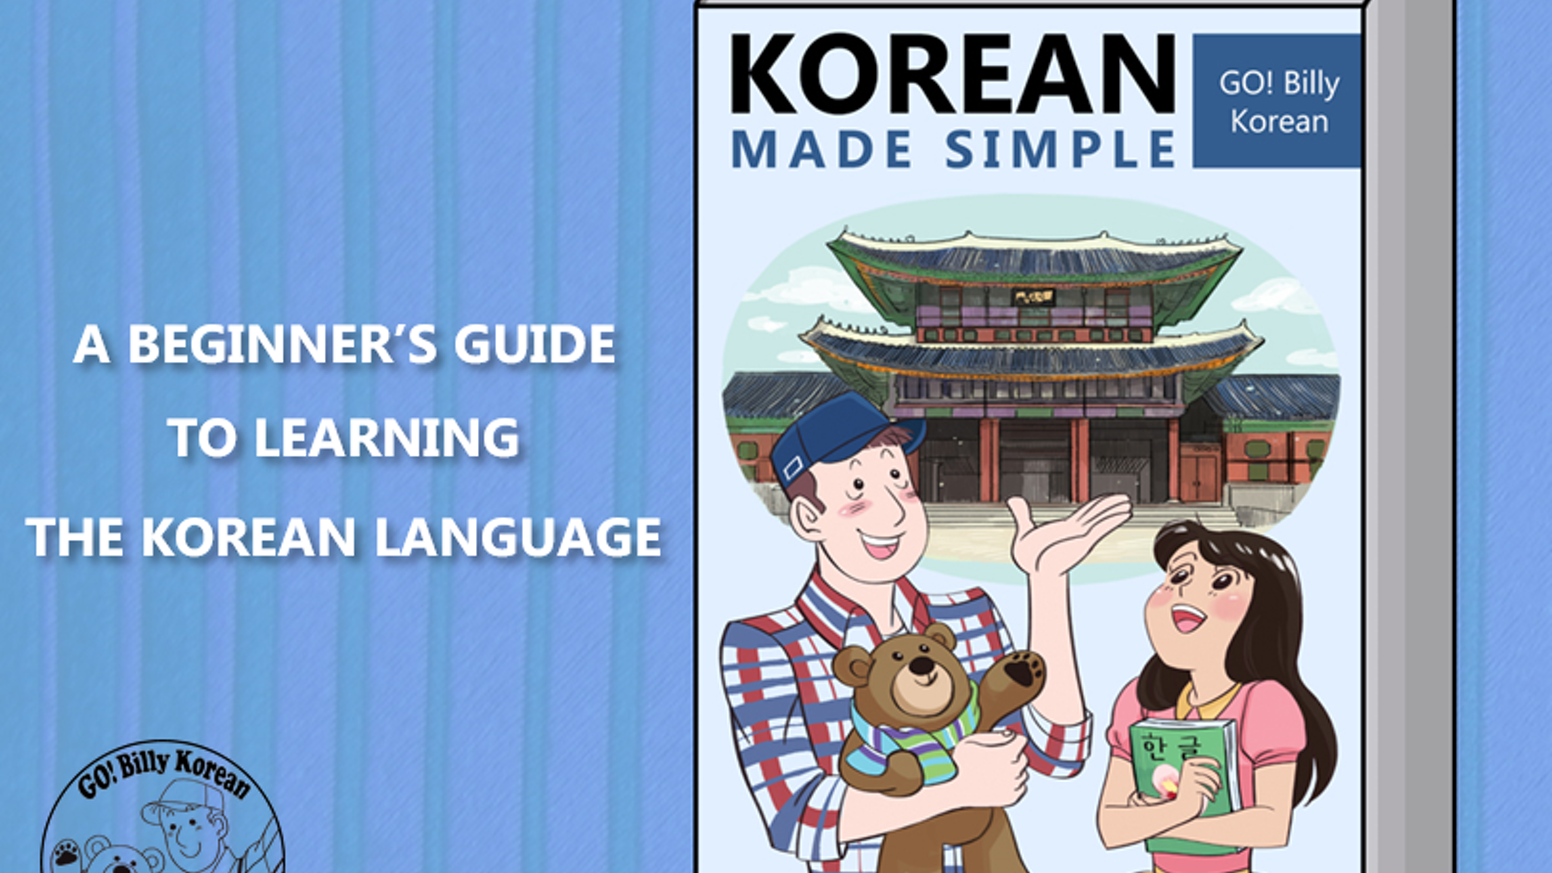 Korean Made Simple: A beginner's guide to Korean by Billy Go